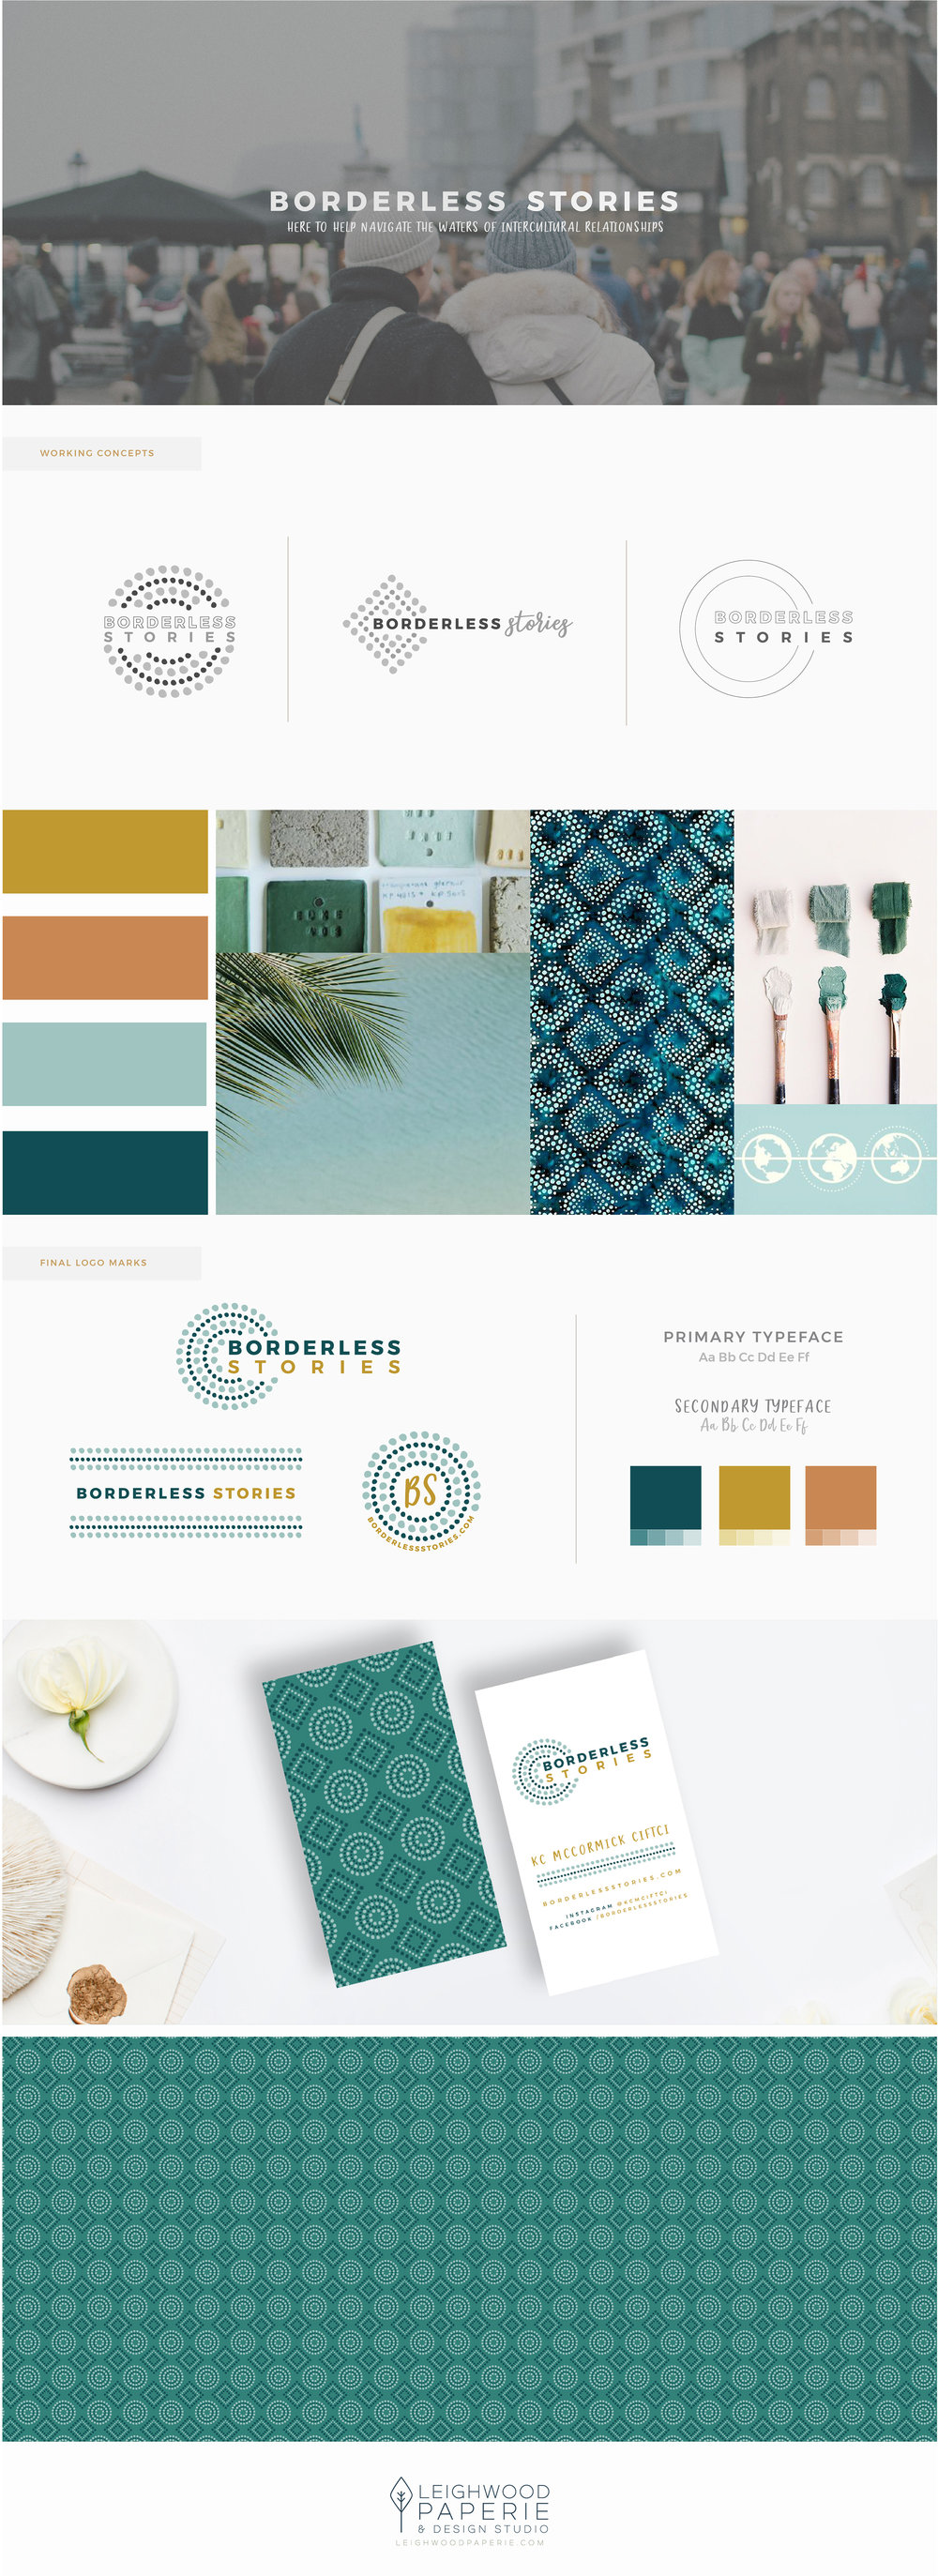 Leighwood Paperie | Branding Portfolio | Borderless Stories